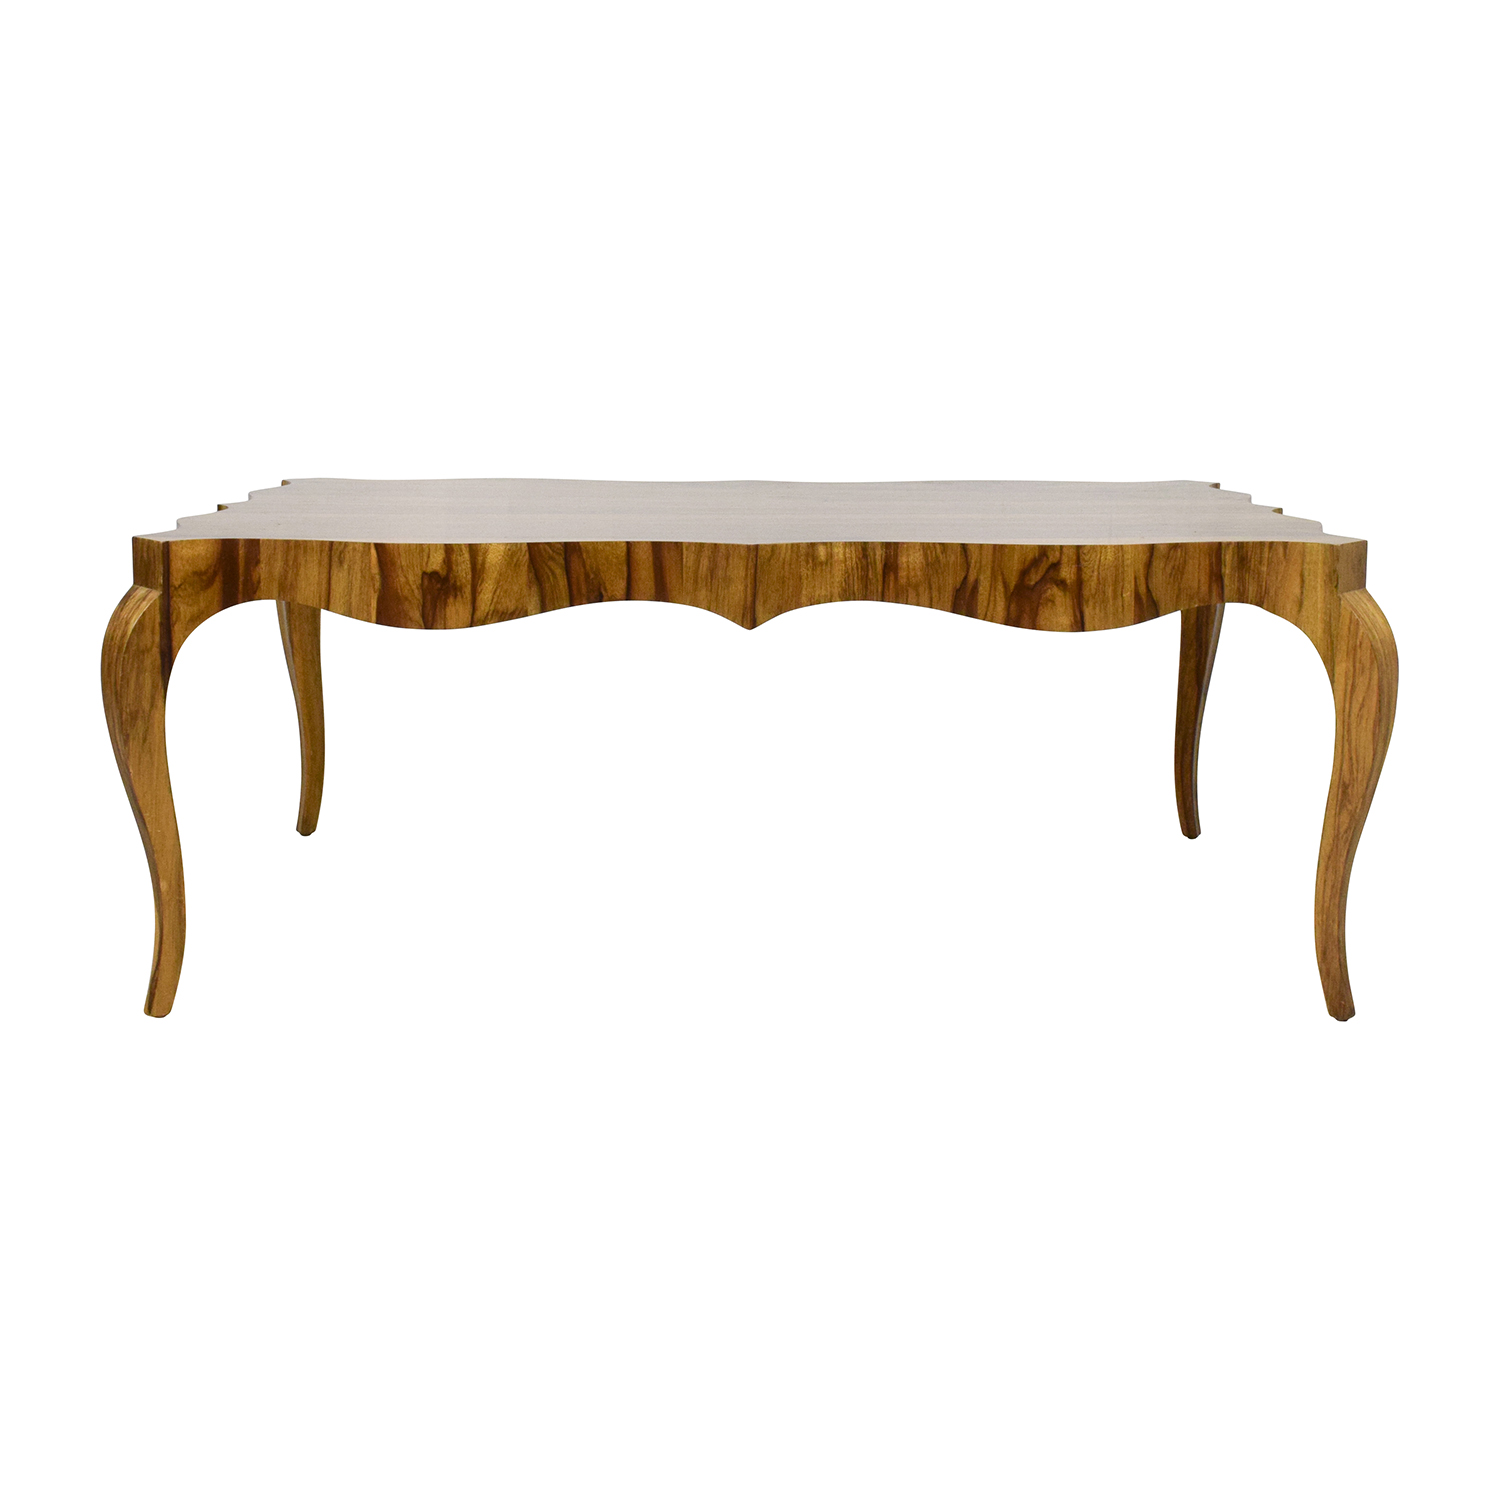 Theodore Alexander Keno Bros Theodore Alexander Keno Bros The Fine Point II Coffee Table discount